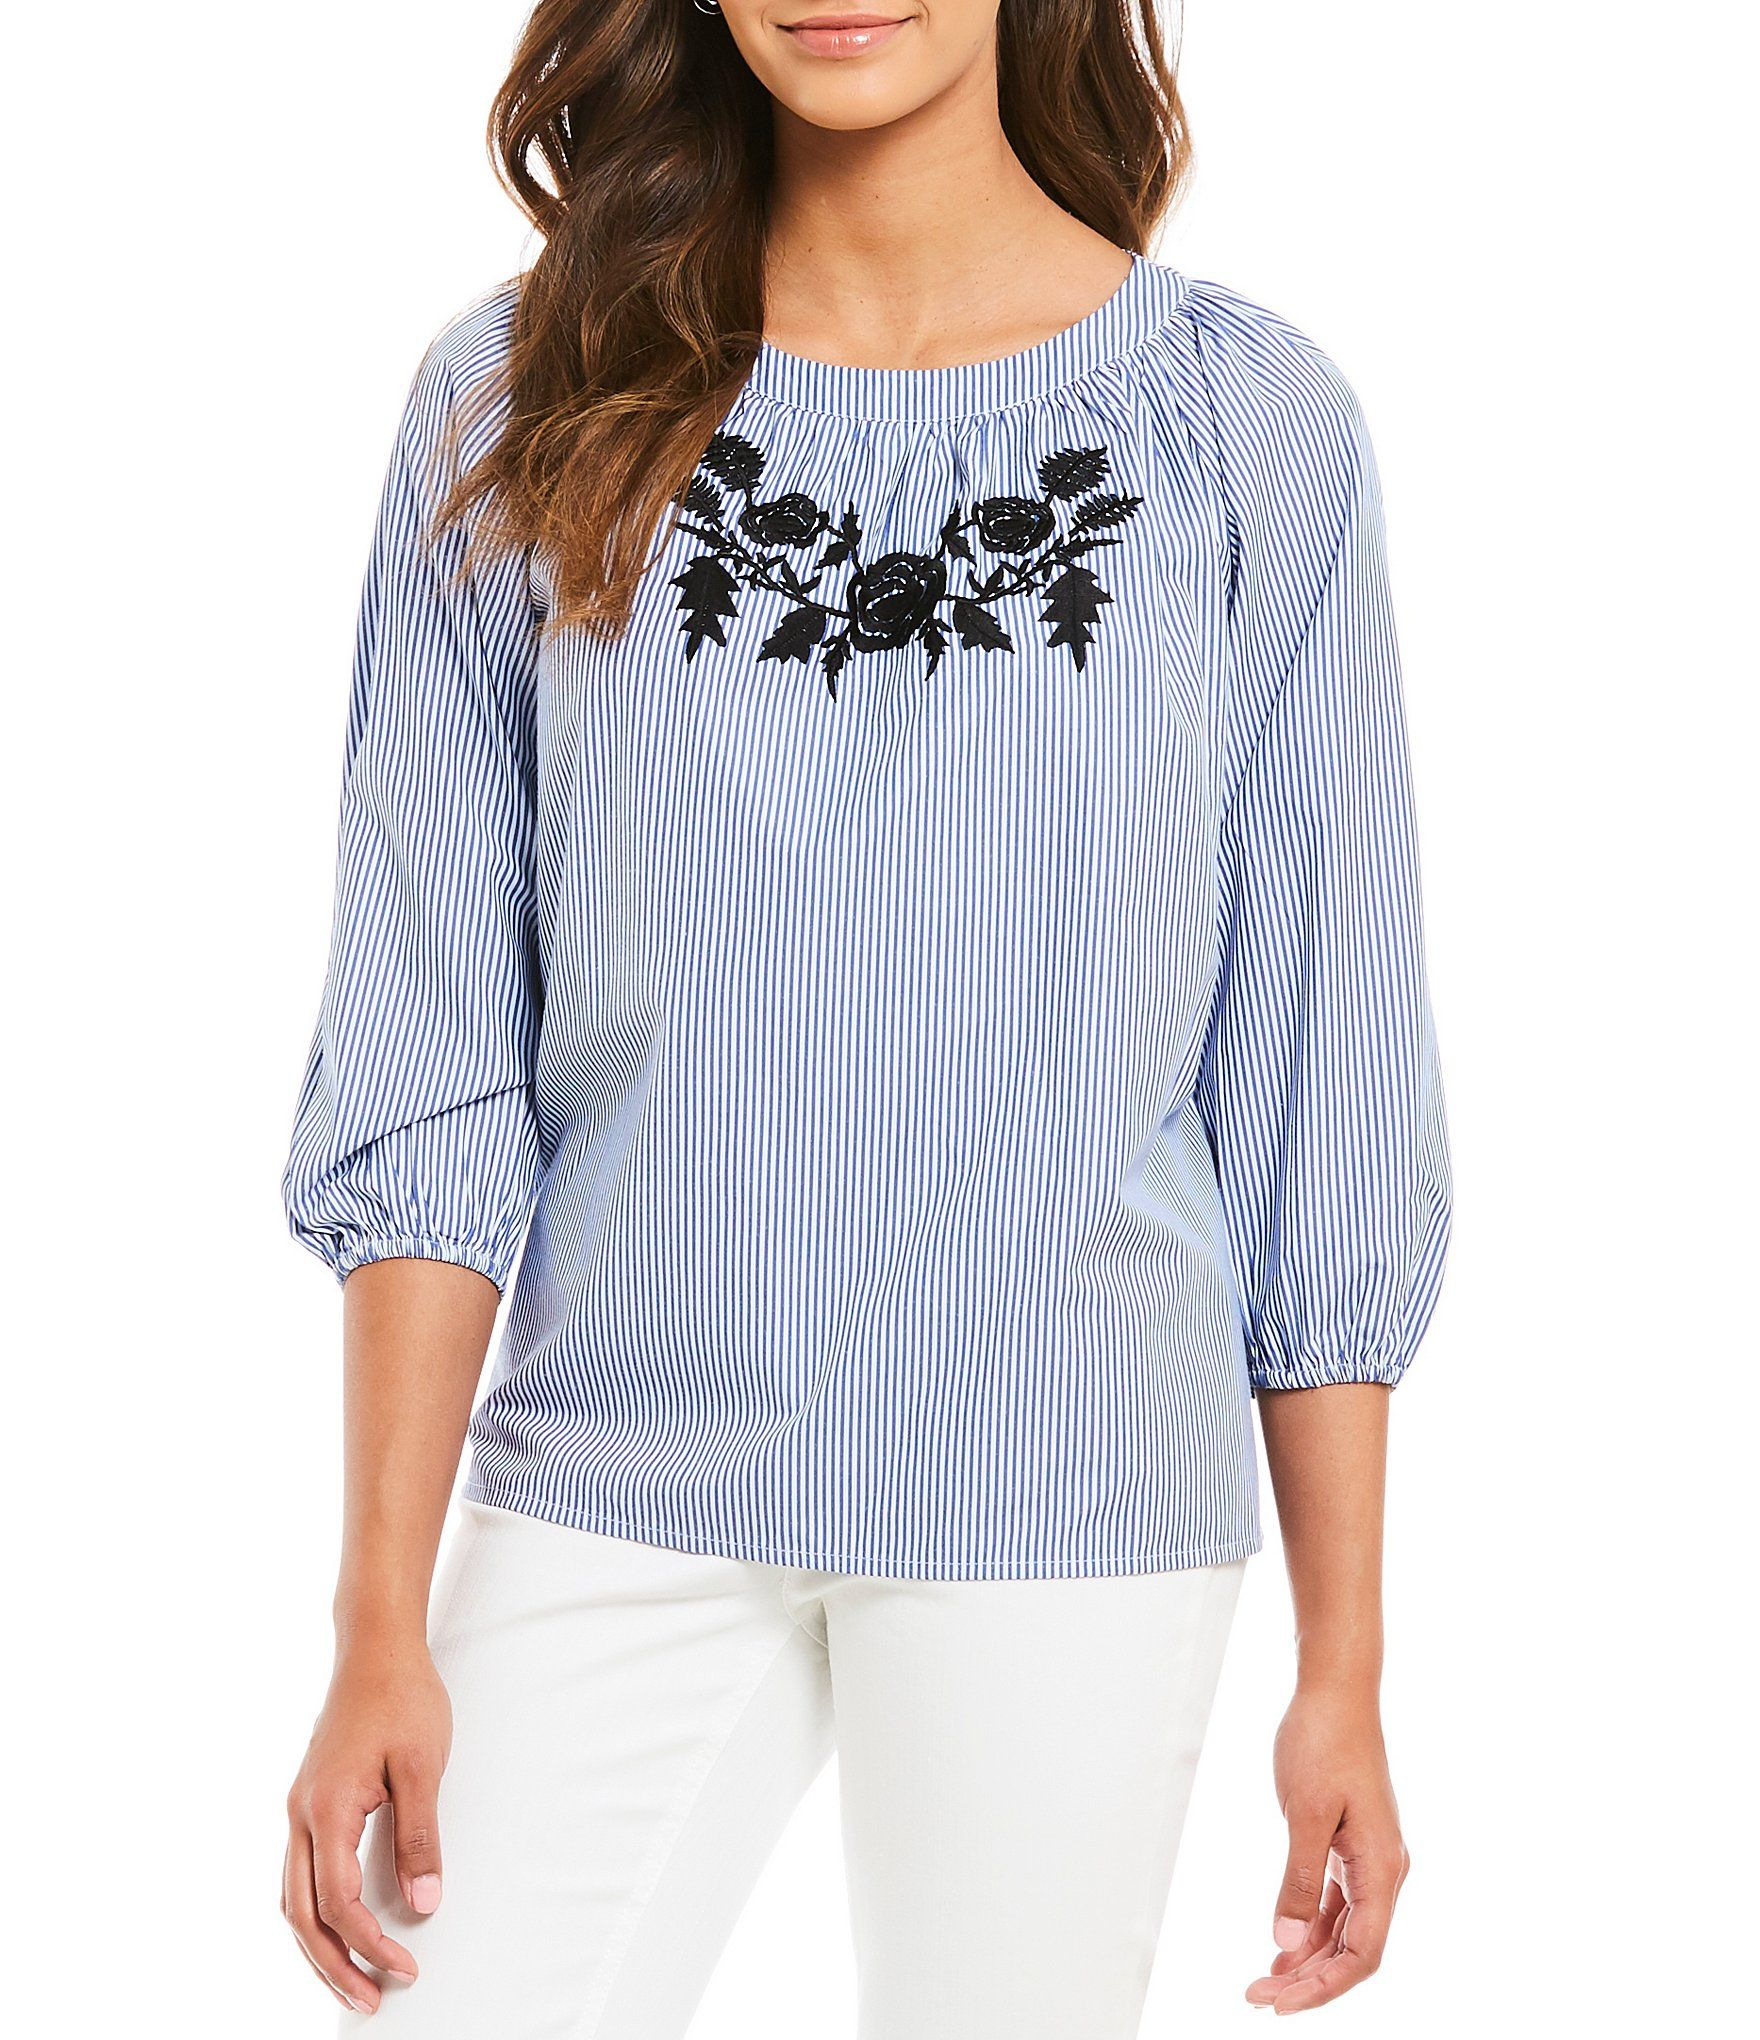 e63ce5767f5 Shop for Jones New York Off-The-Shoulder Floral Embroidered Stripe Novelty  Shirting Peasant Top at Dillards.com. Visit Dillards.com to find clothing